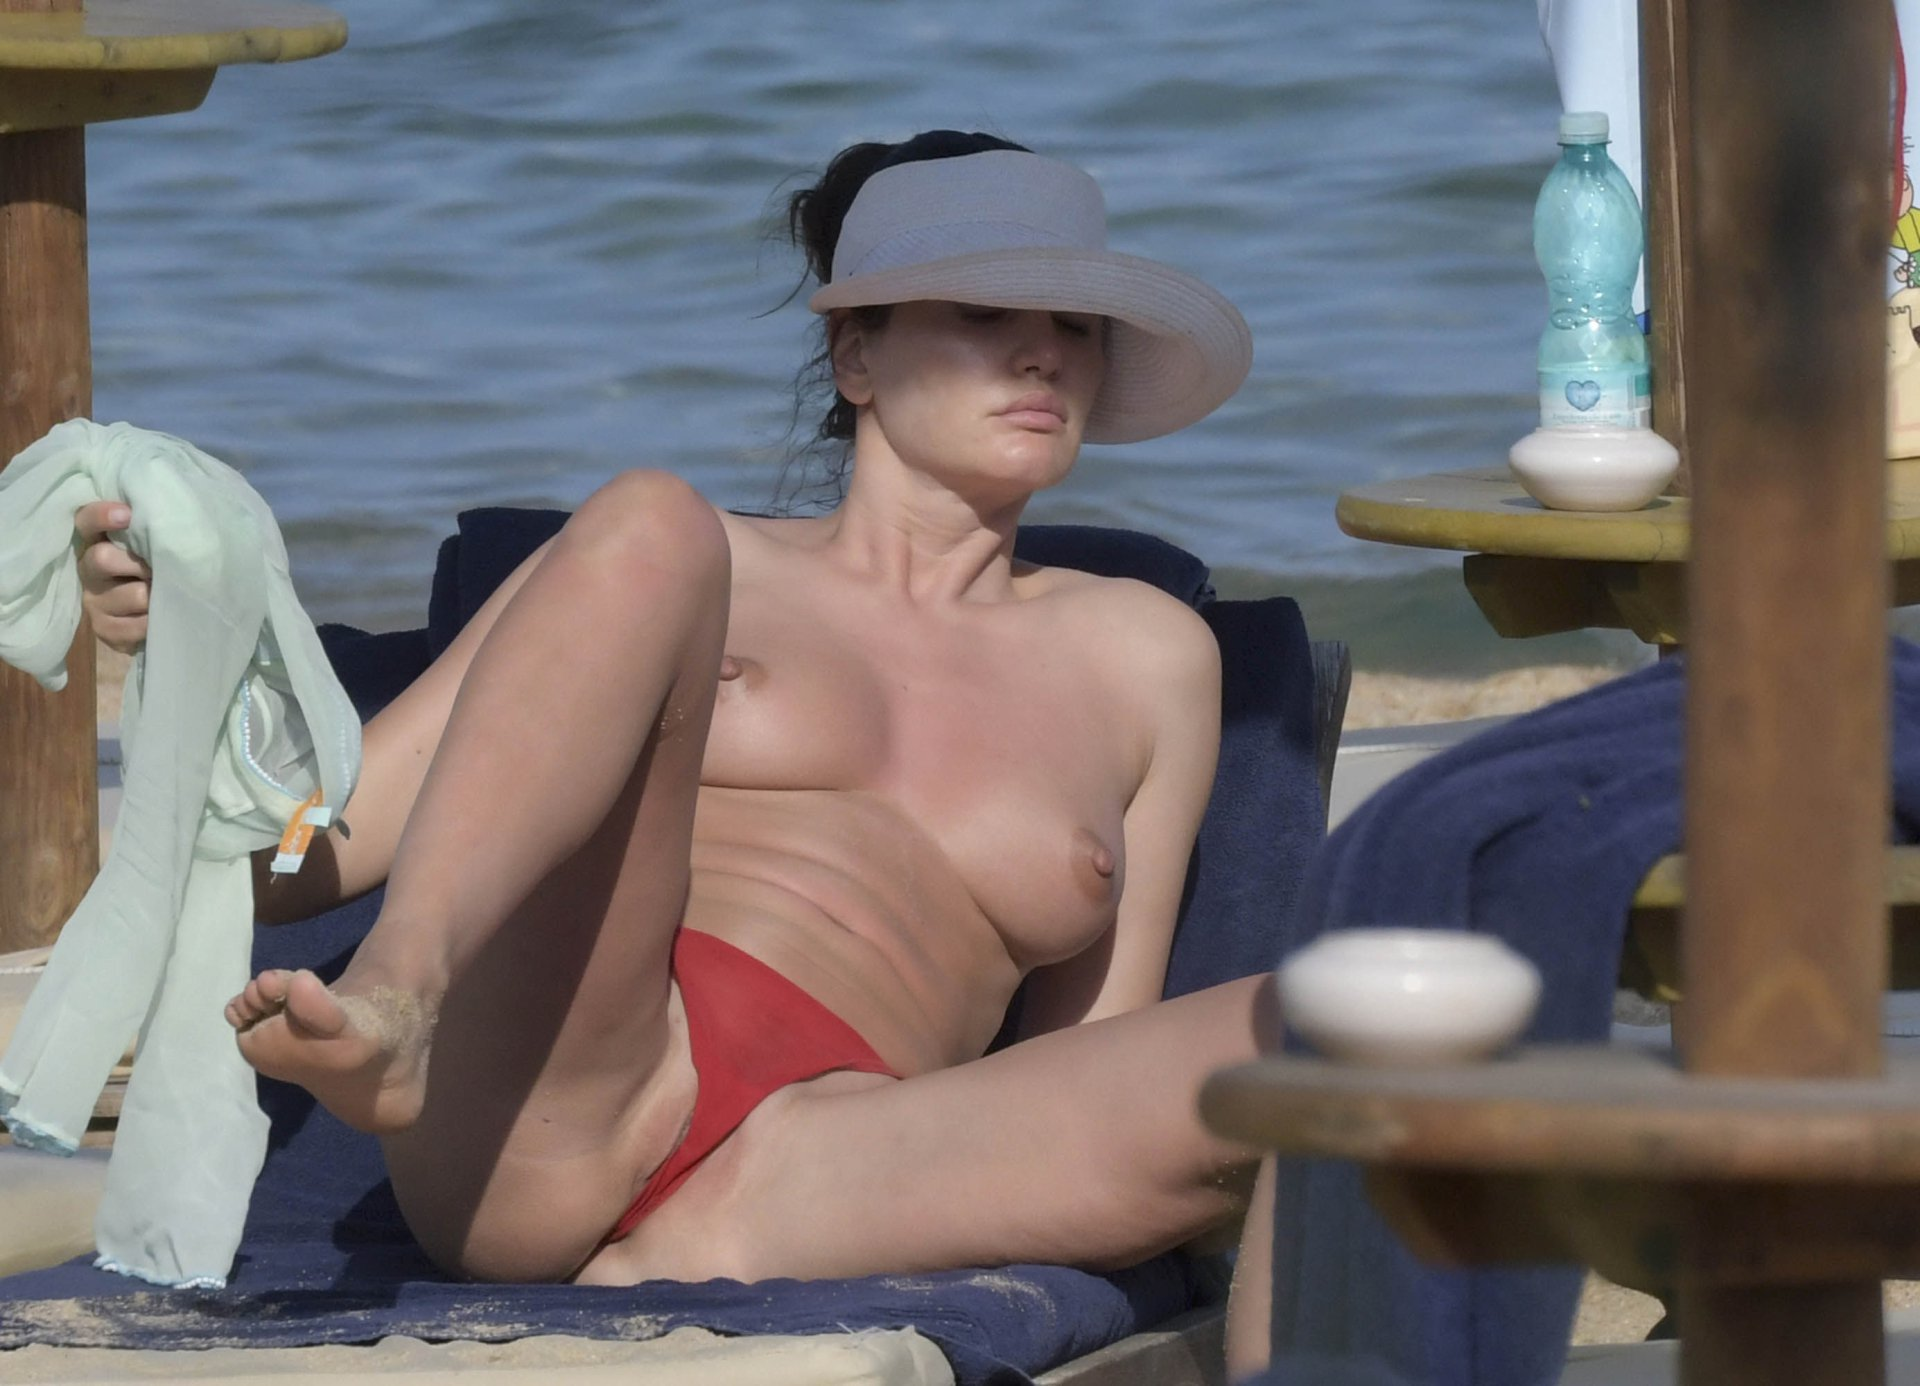 Bleona Qereti Topless on Beach in Italy 15